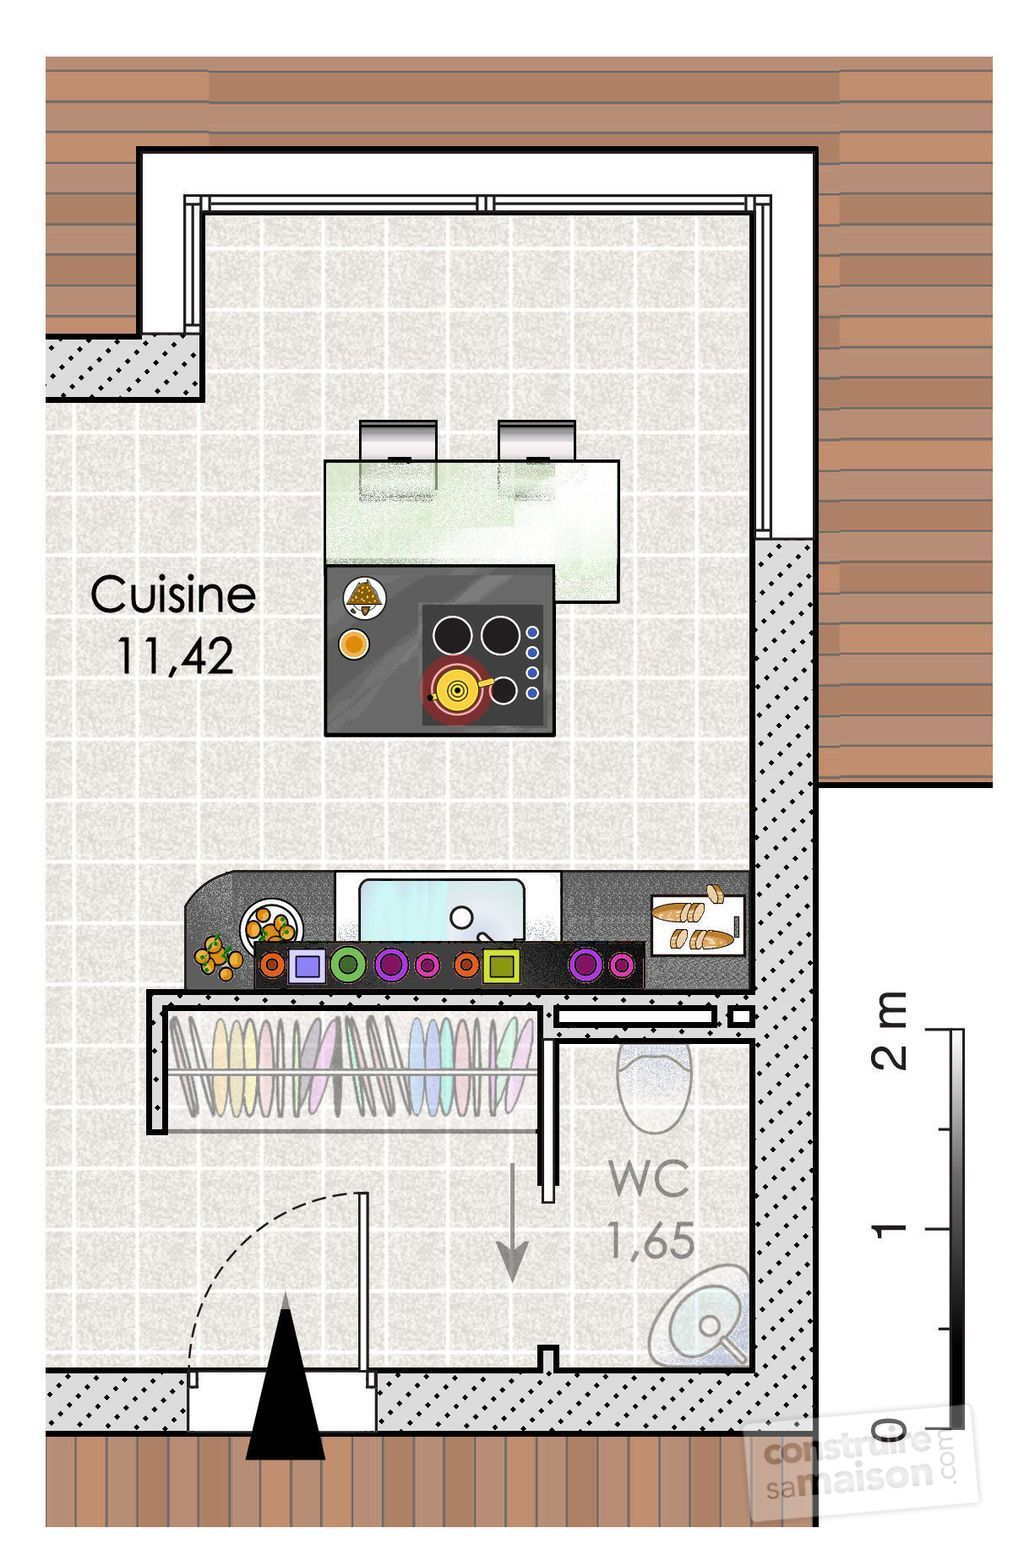 Maison design d tail du plan de maison design faire - Plan maison deux etages ...